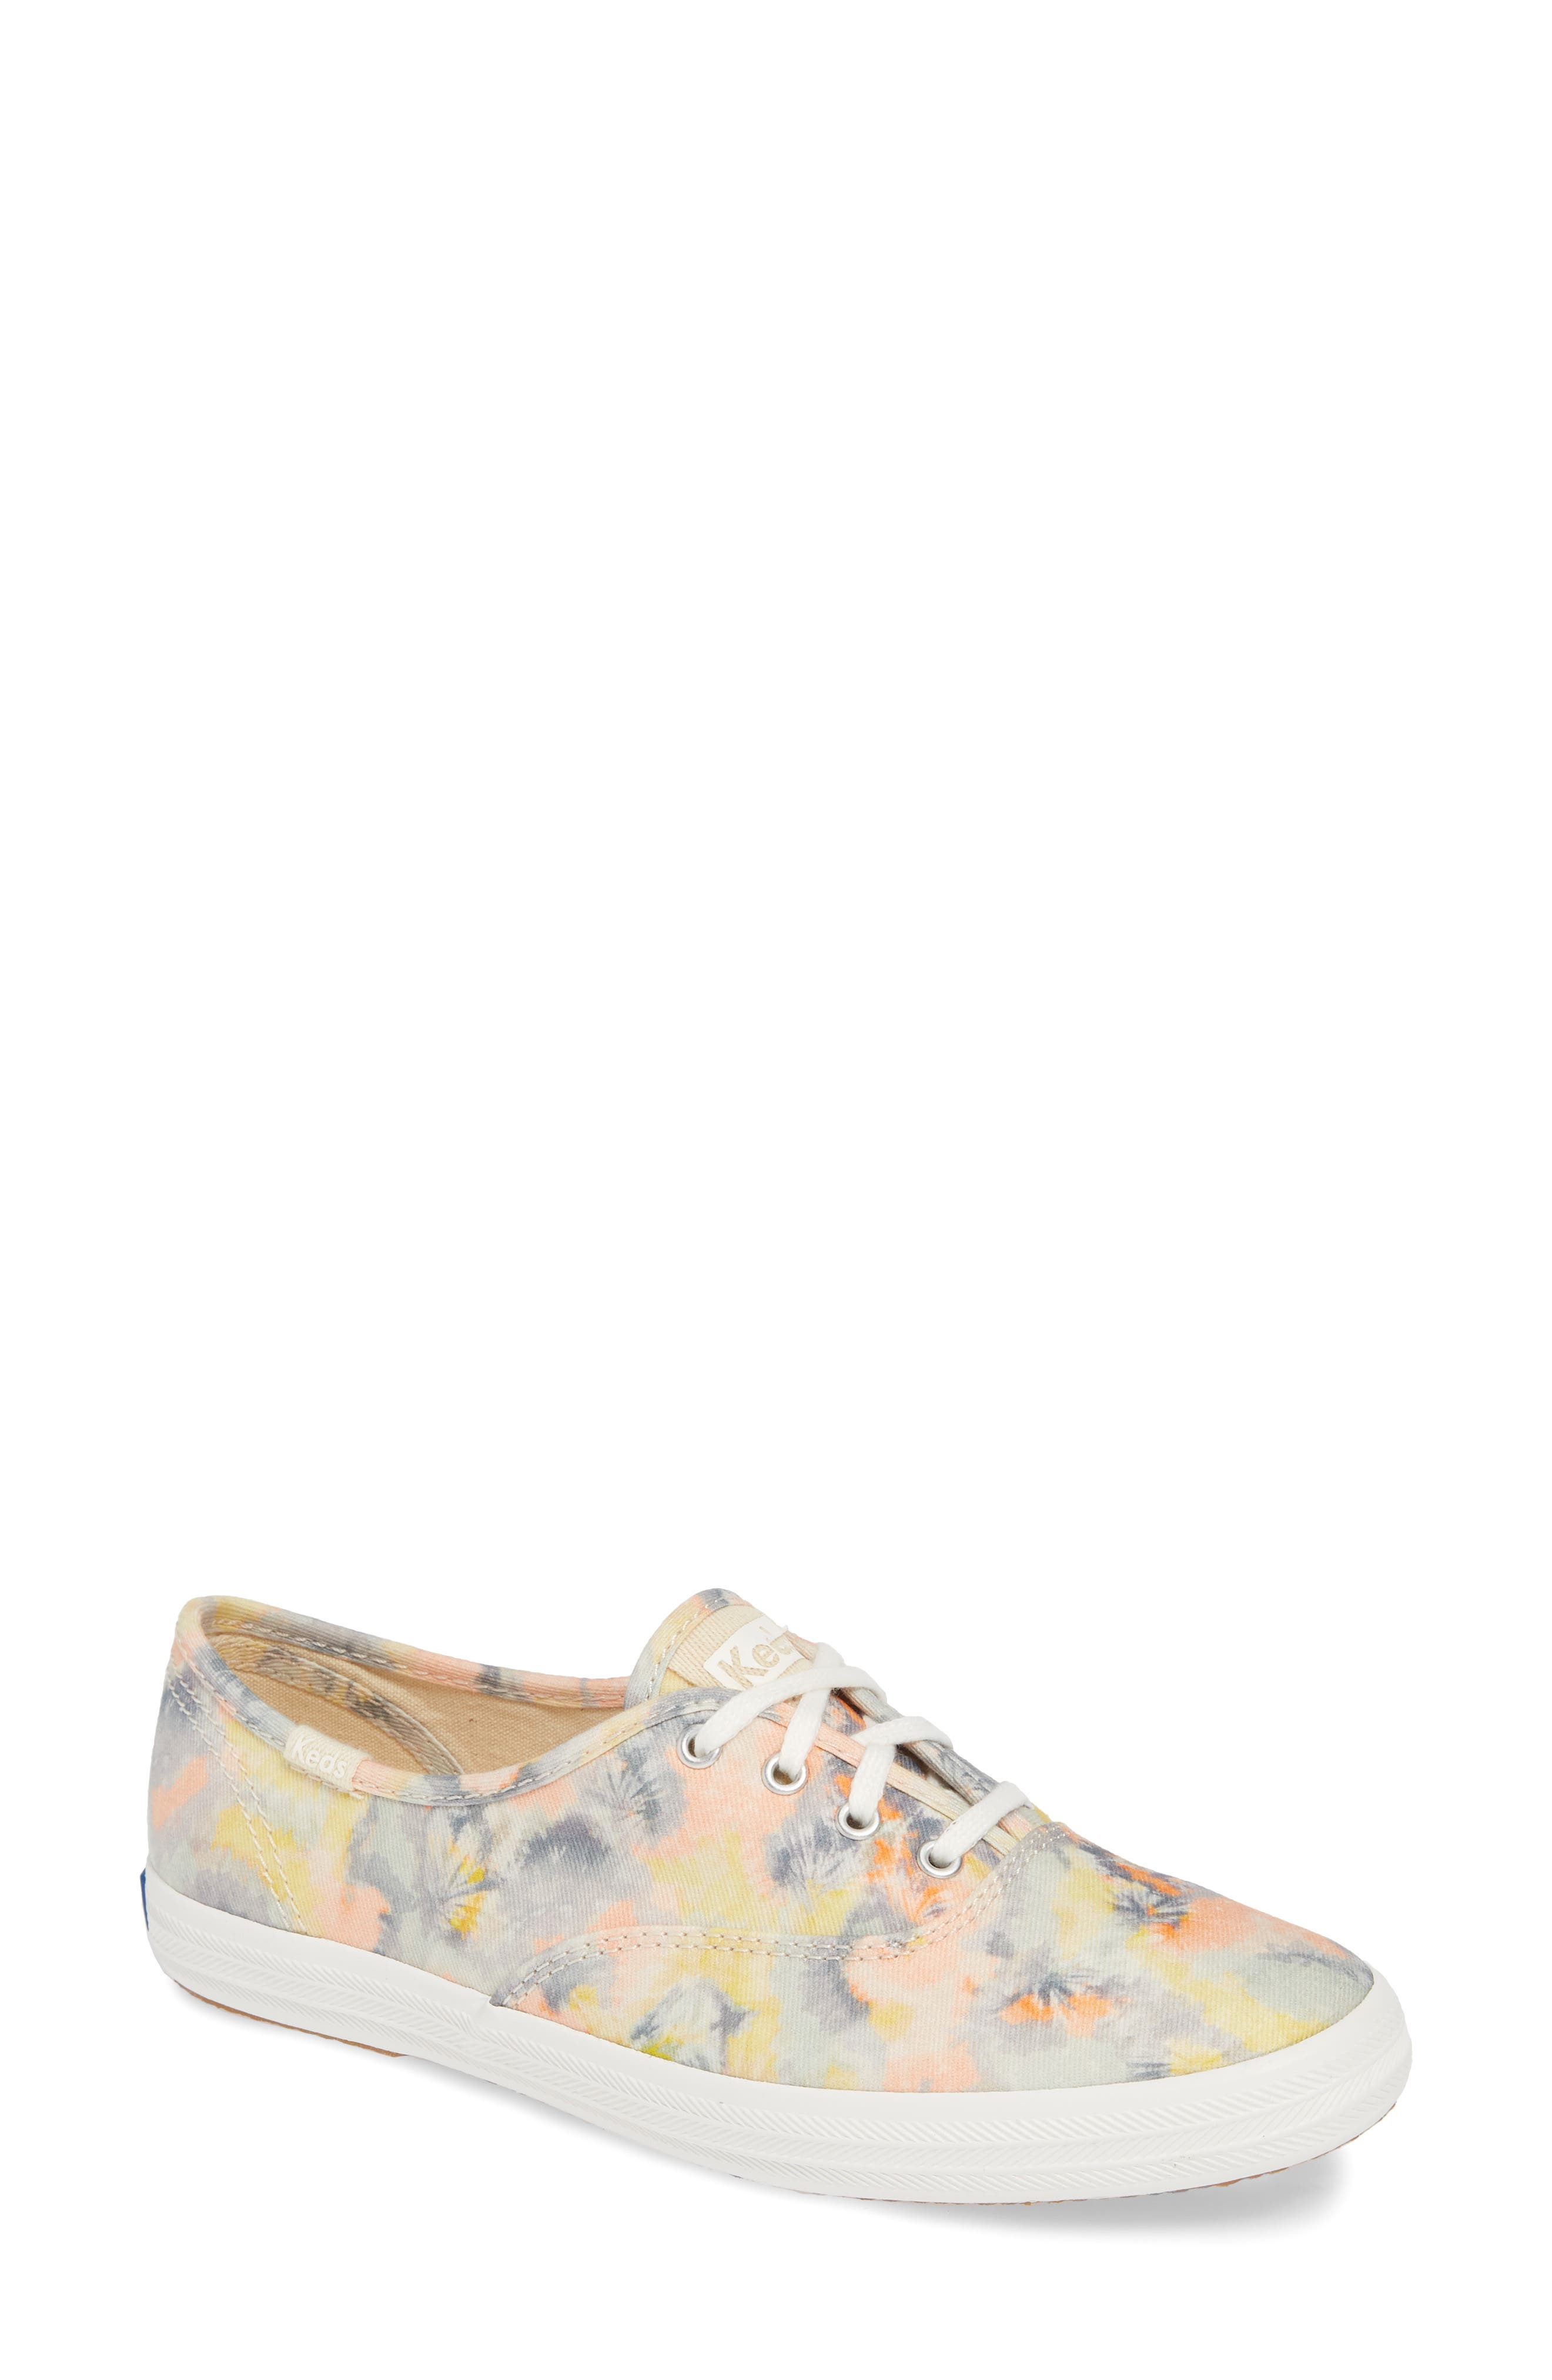 KEDS<SUP>®</SUP> Champion Tie Dye Sneaker, Main, color, PINK MULTI